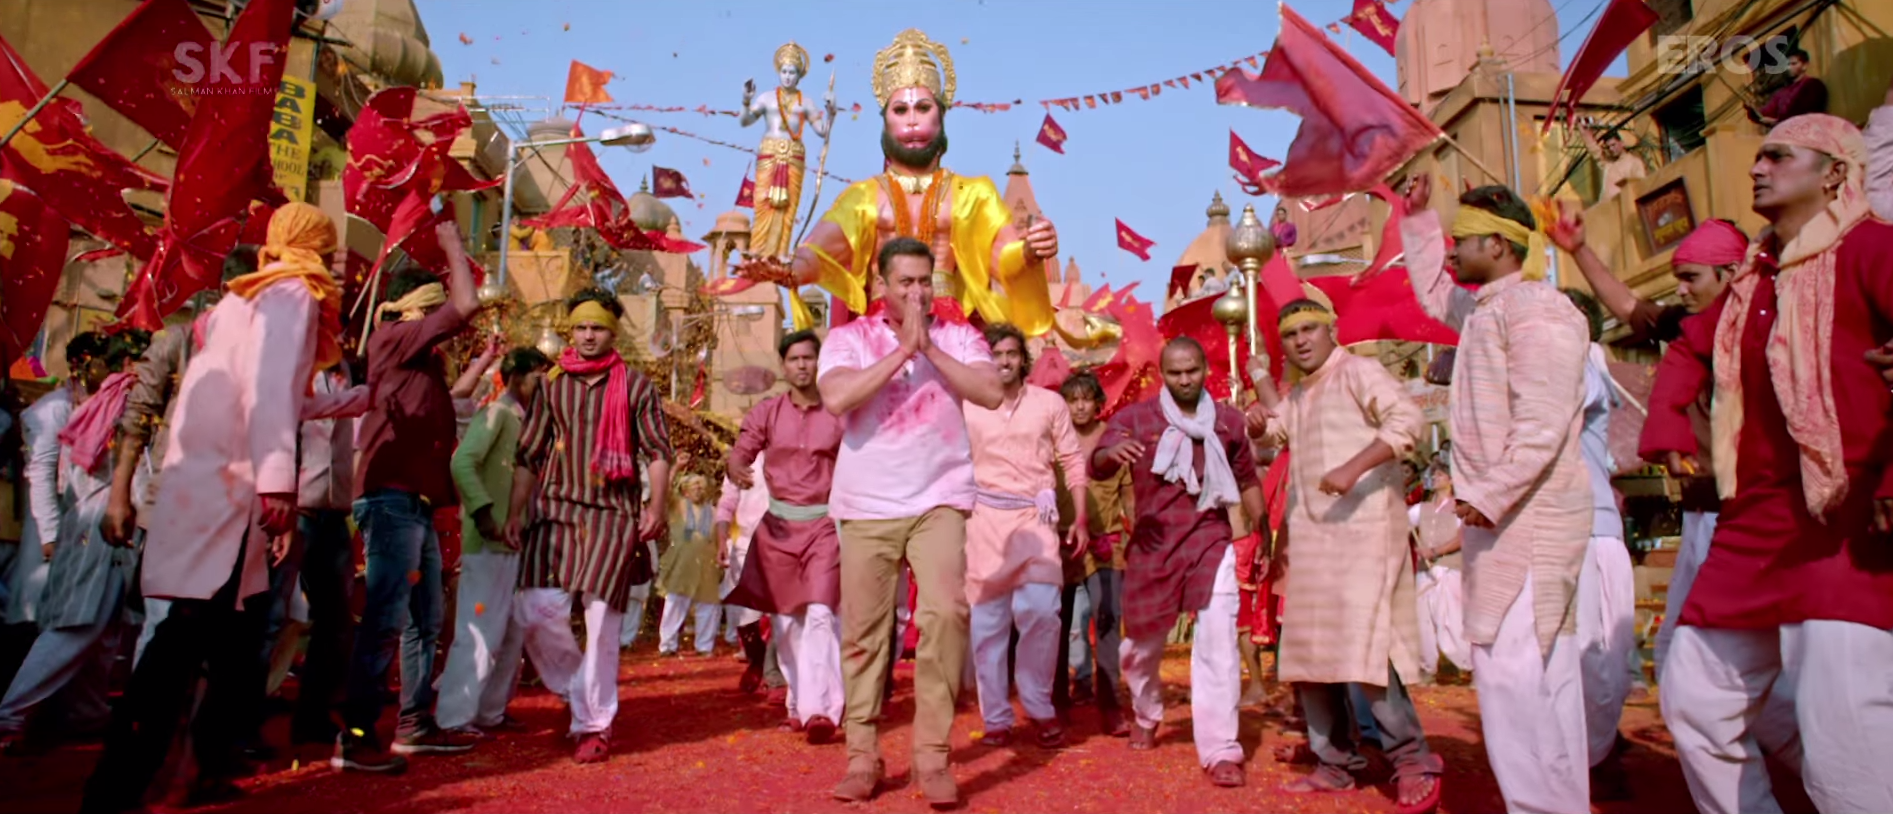 Watch : 'Bajrangi Bhaijaan' Movie Trailer Starring Salman Khan, Kareena Kapoor Khan, Nawazuddin Siddiqui